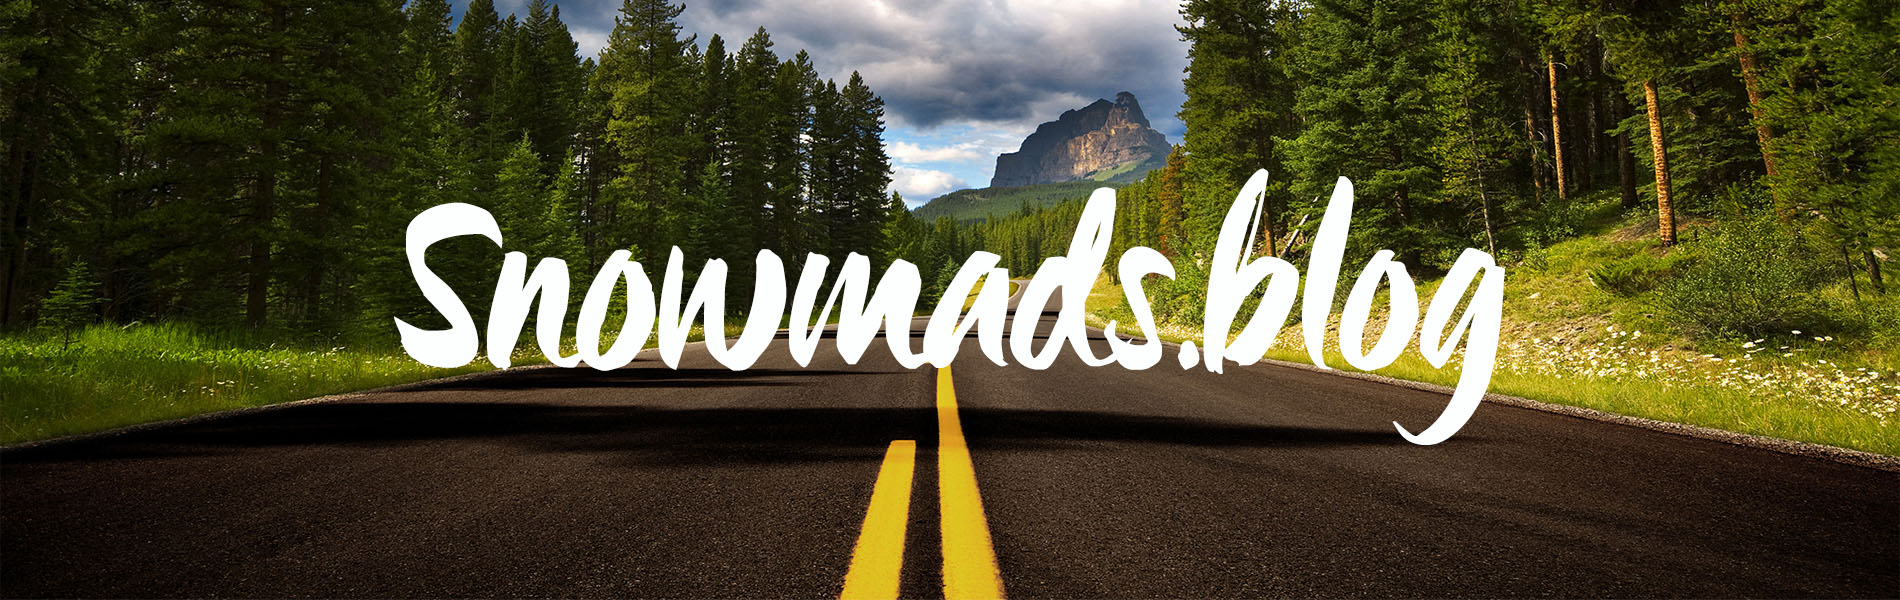 Snowmads: Digital Nomads in Search of Adventure Everyday